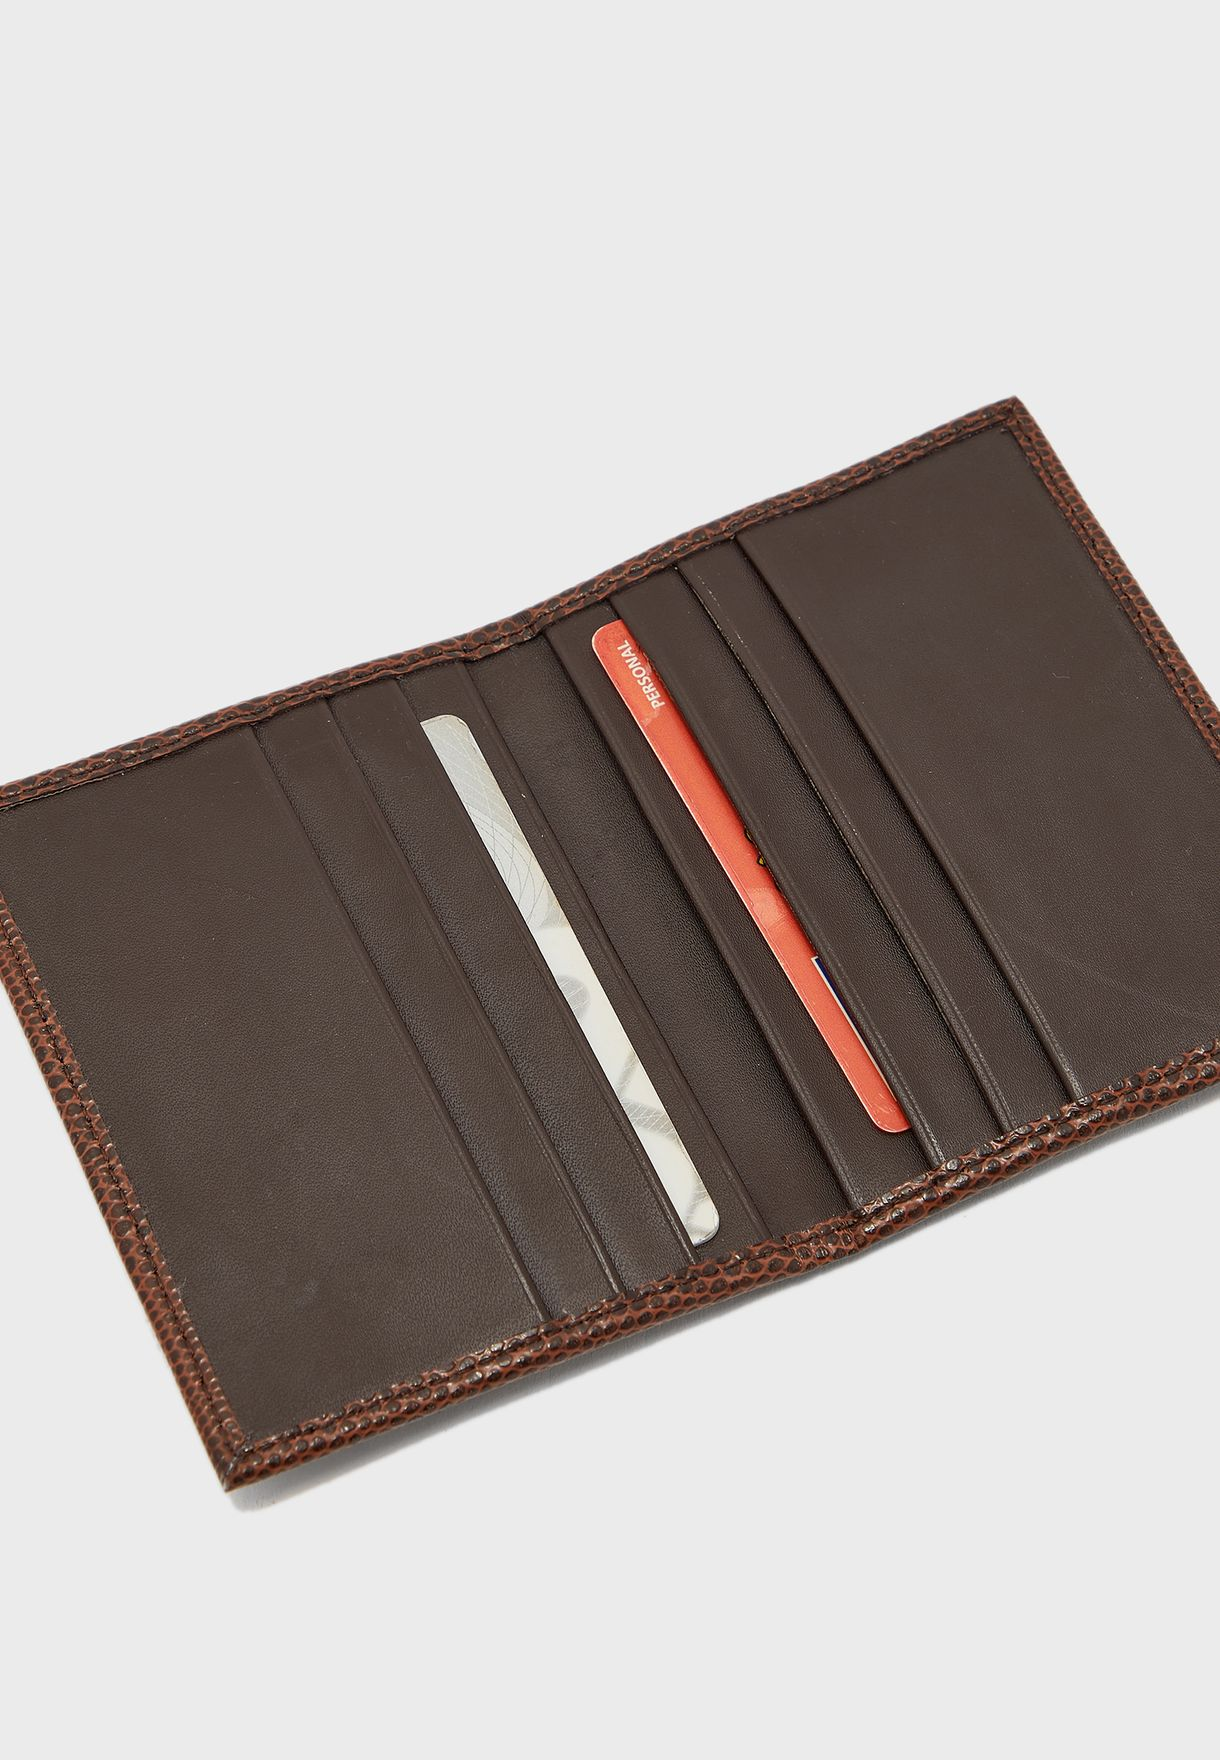 2 in 1 Gents Wallet and Card Holder Gift Set